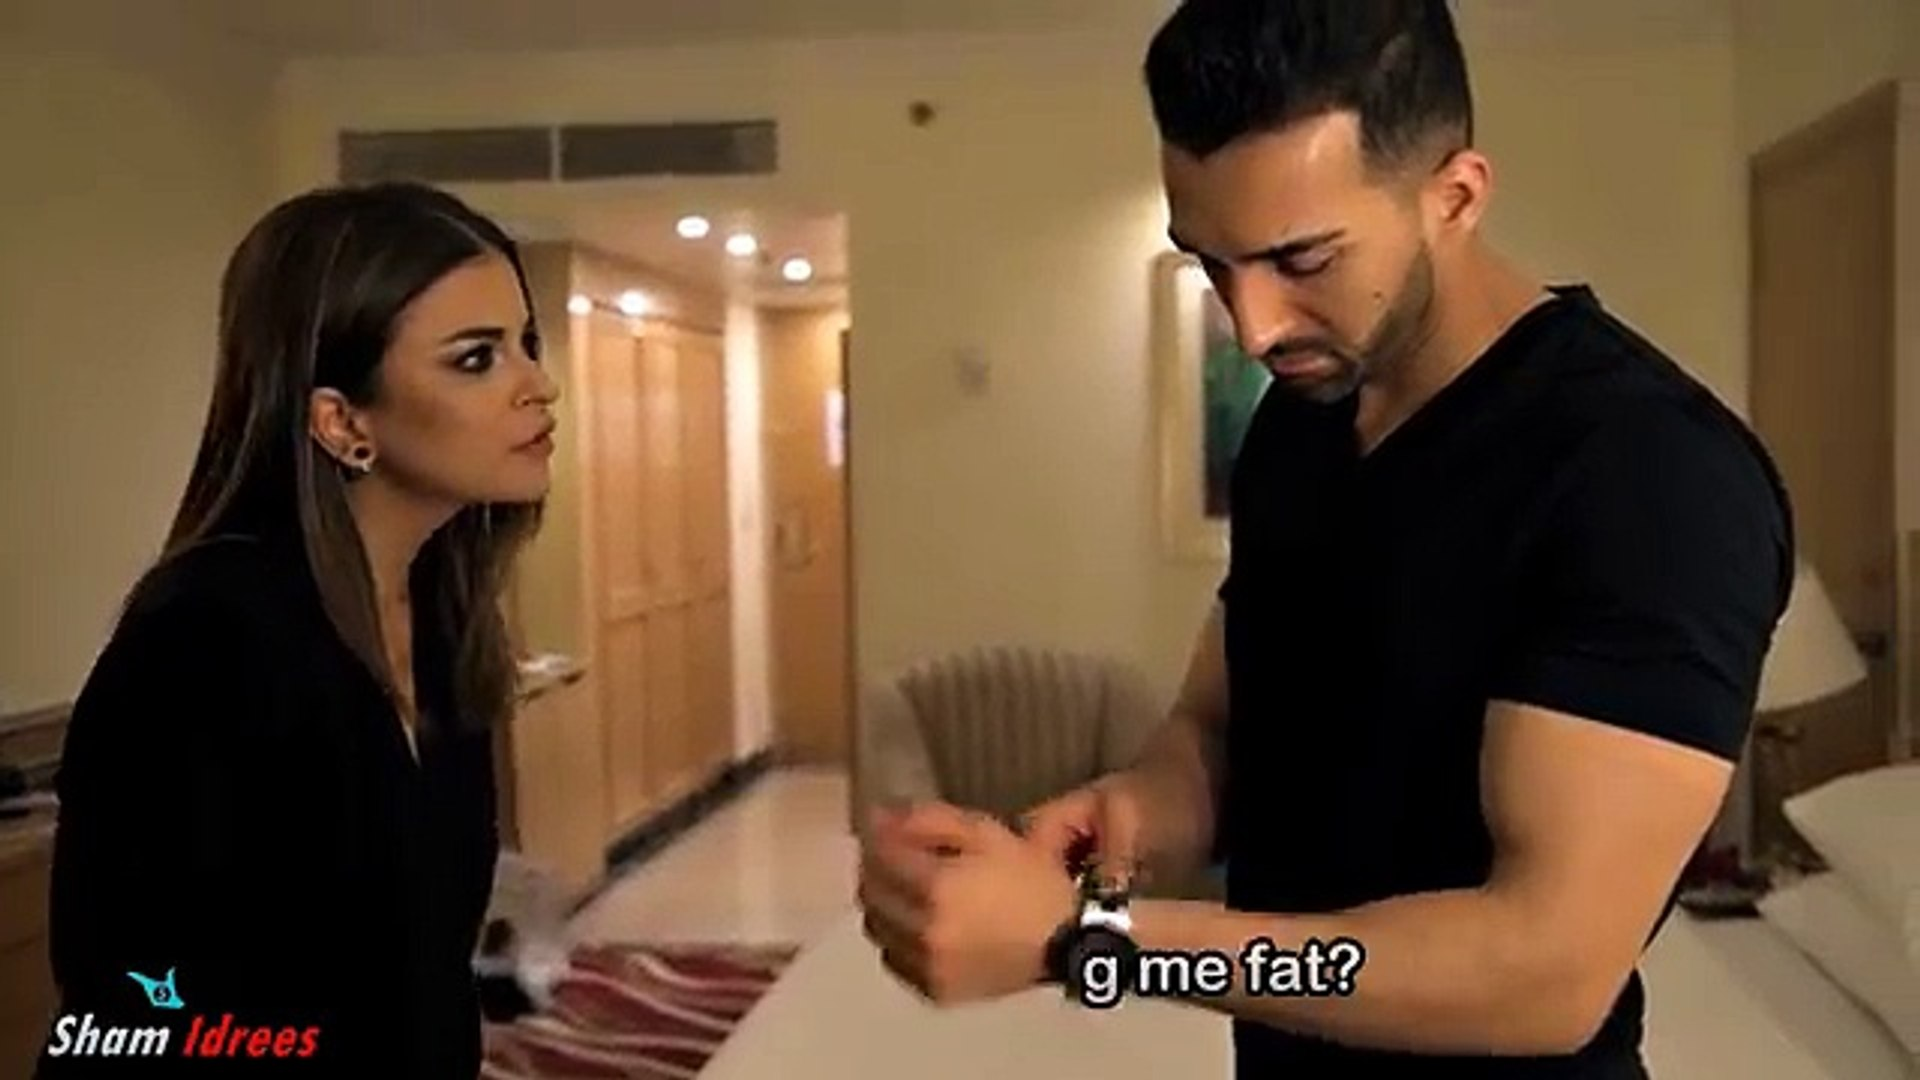 When You Ask Her A Simple Question Sham Idrees Video Dailymotion